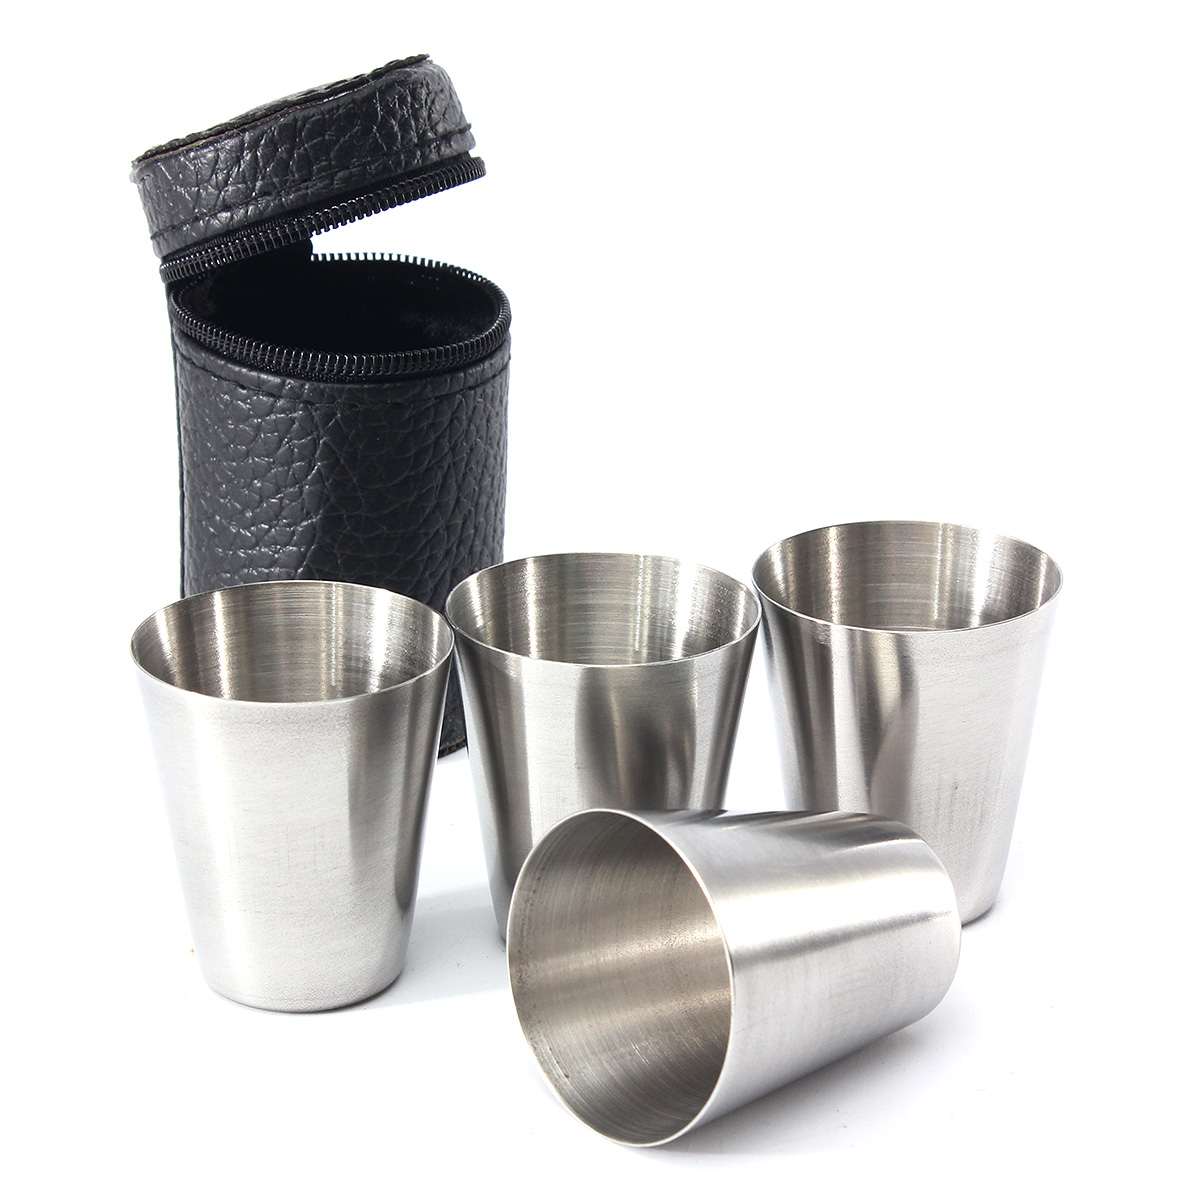 4Pcs Stainless Steel Camping Cup Mug Drinking Coffee Te